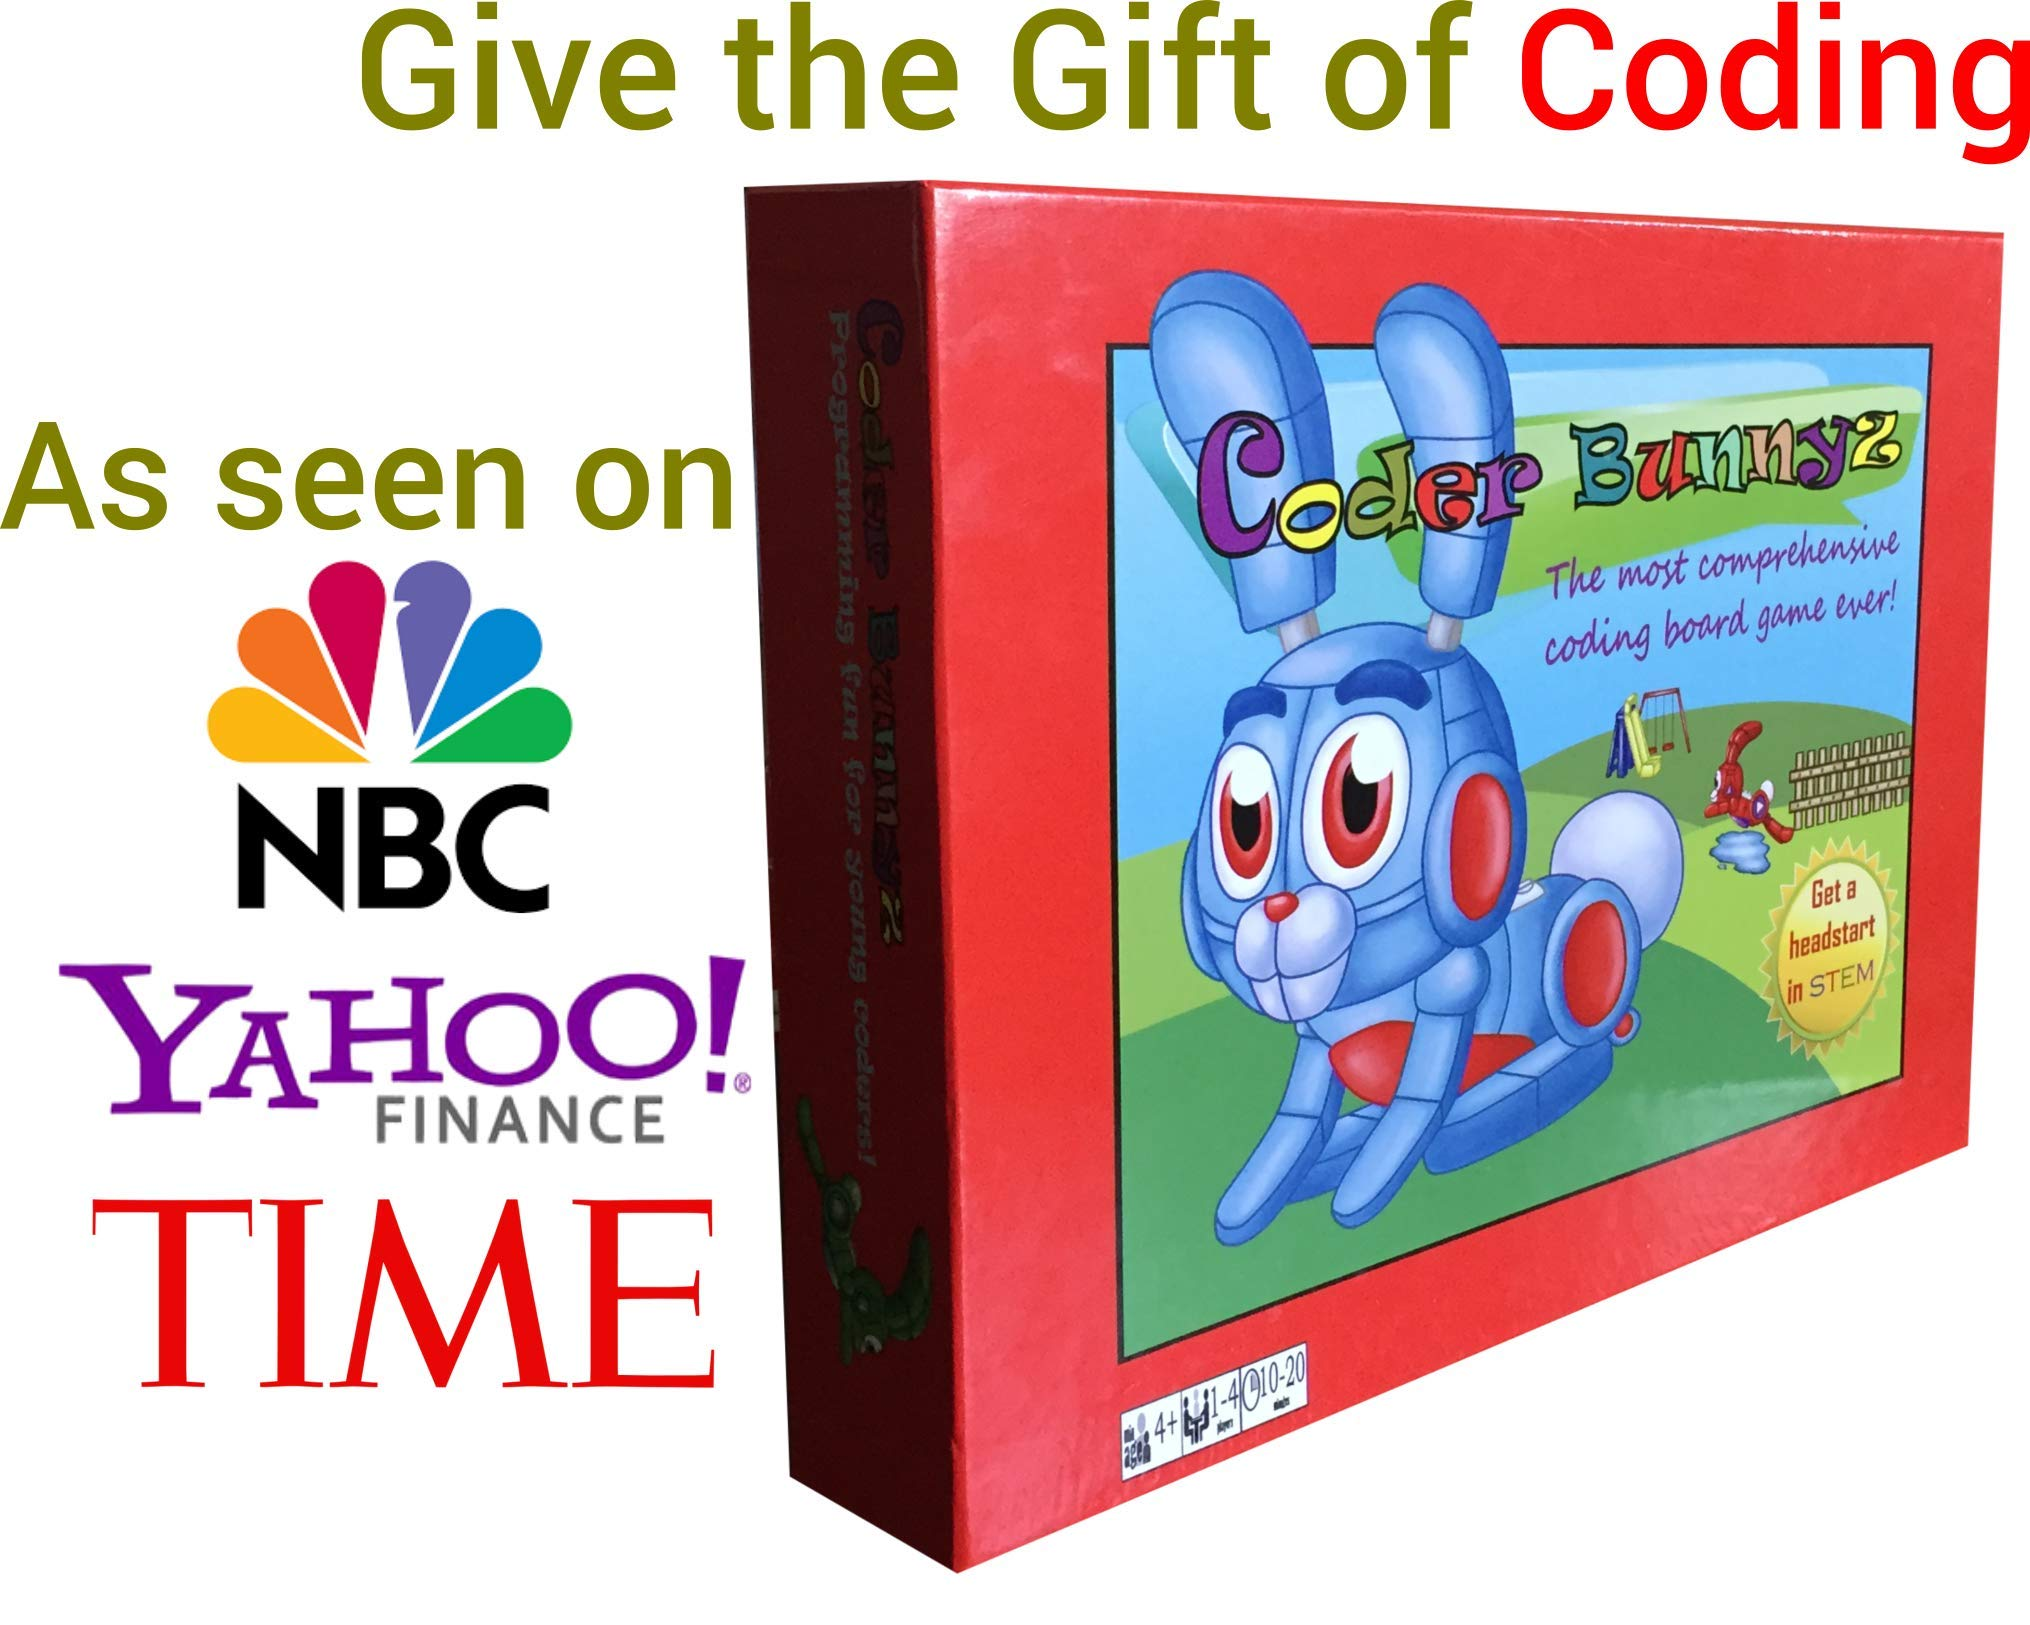 Coder Bunnyz - The Most Comprehensive STEM Coding Board Game Ever! Learn All The Concepts You Ever Need in Computer Programming in a Fun Adventure. Featured at TIME, NBC, Sony, Google, Maker Faires!